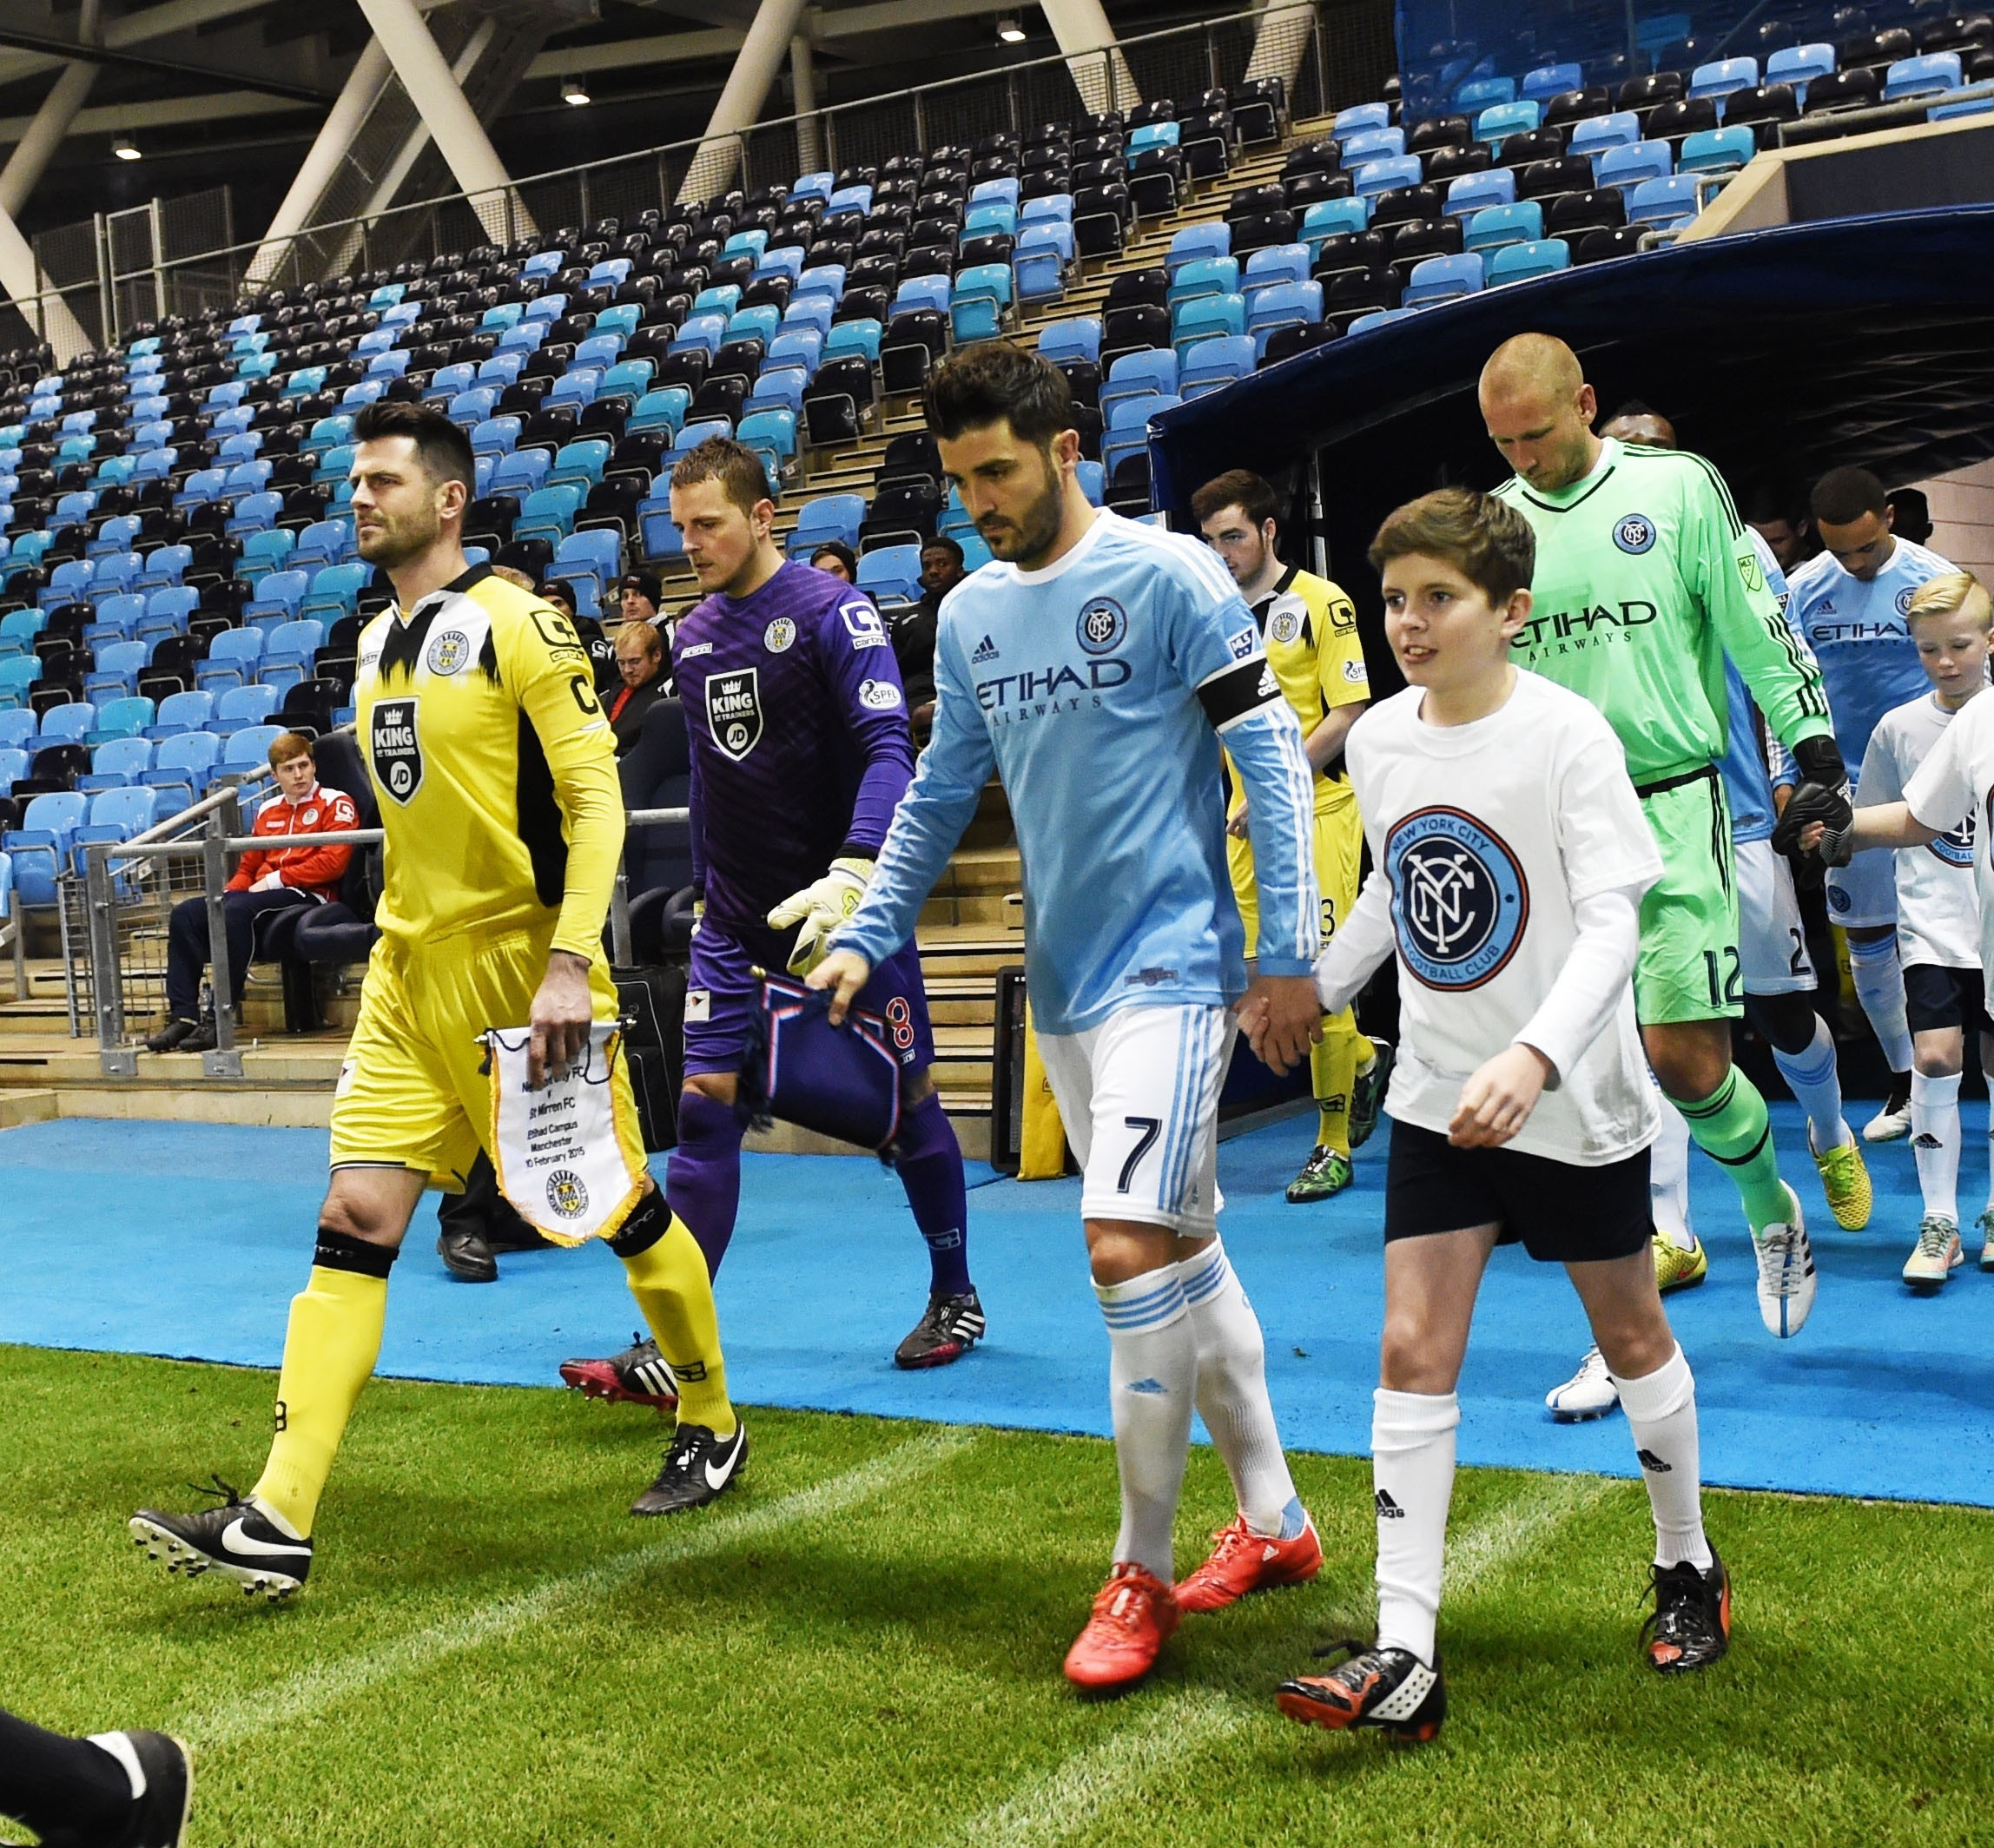 Thompson and Villa lead the teams out